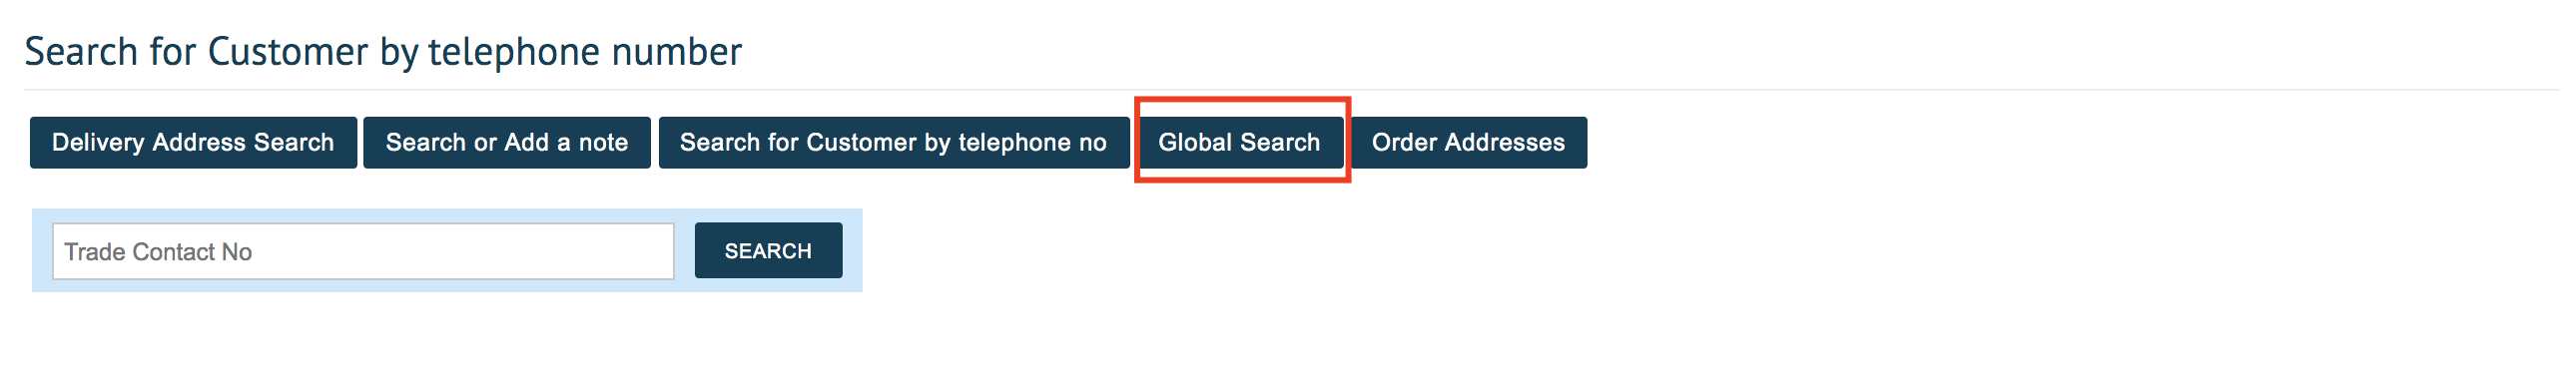 Global Search Funcionality